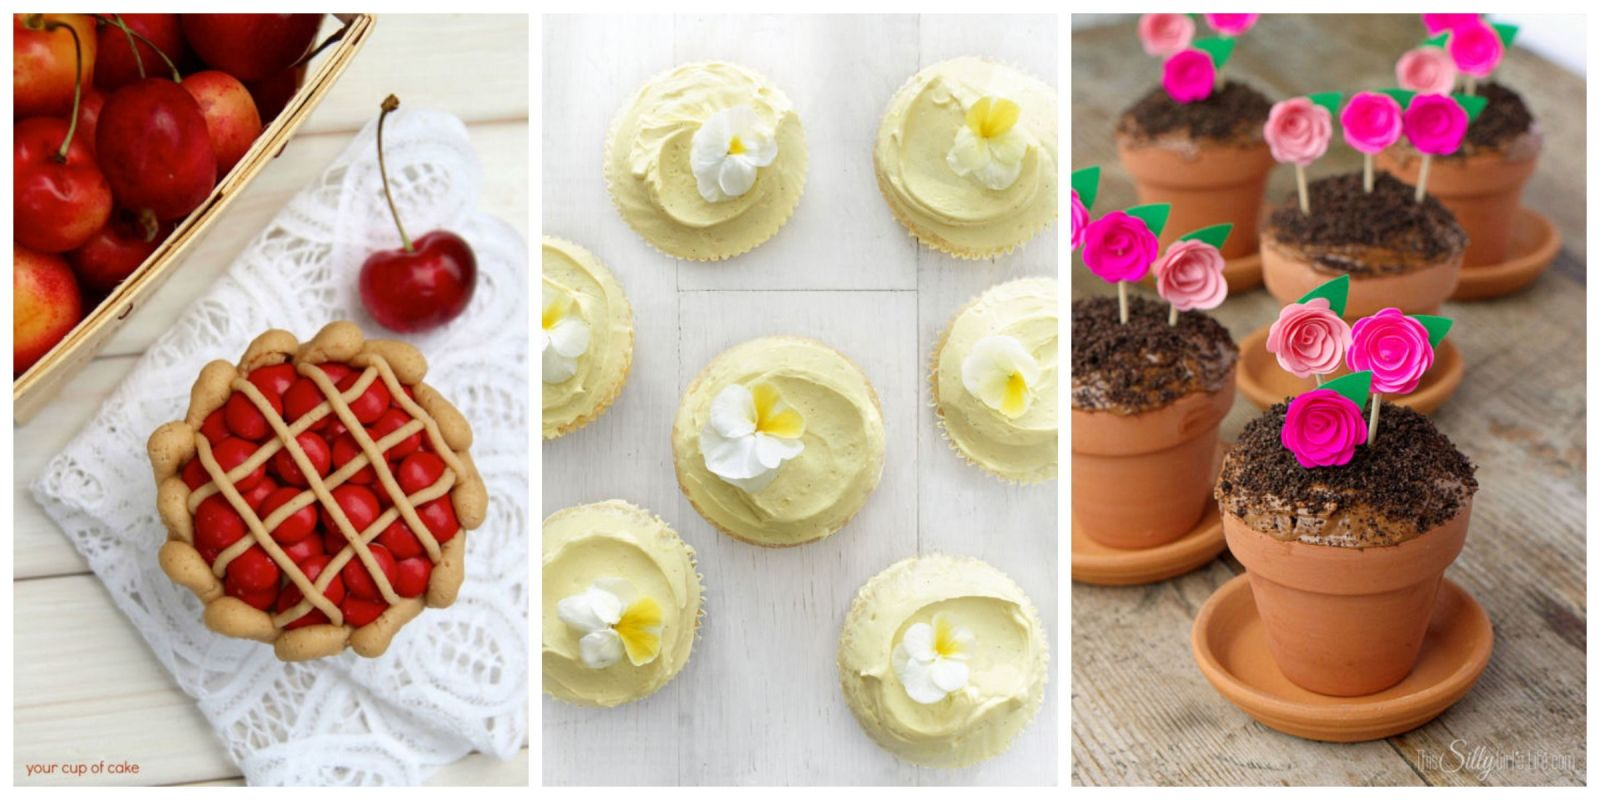 Best Cupcake Decorating Ideas Easy Recipes For Homemade Cupcakes